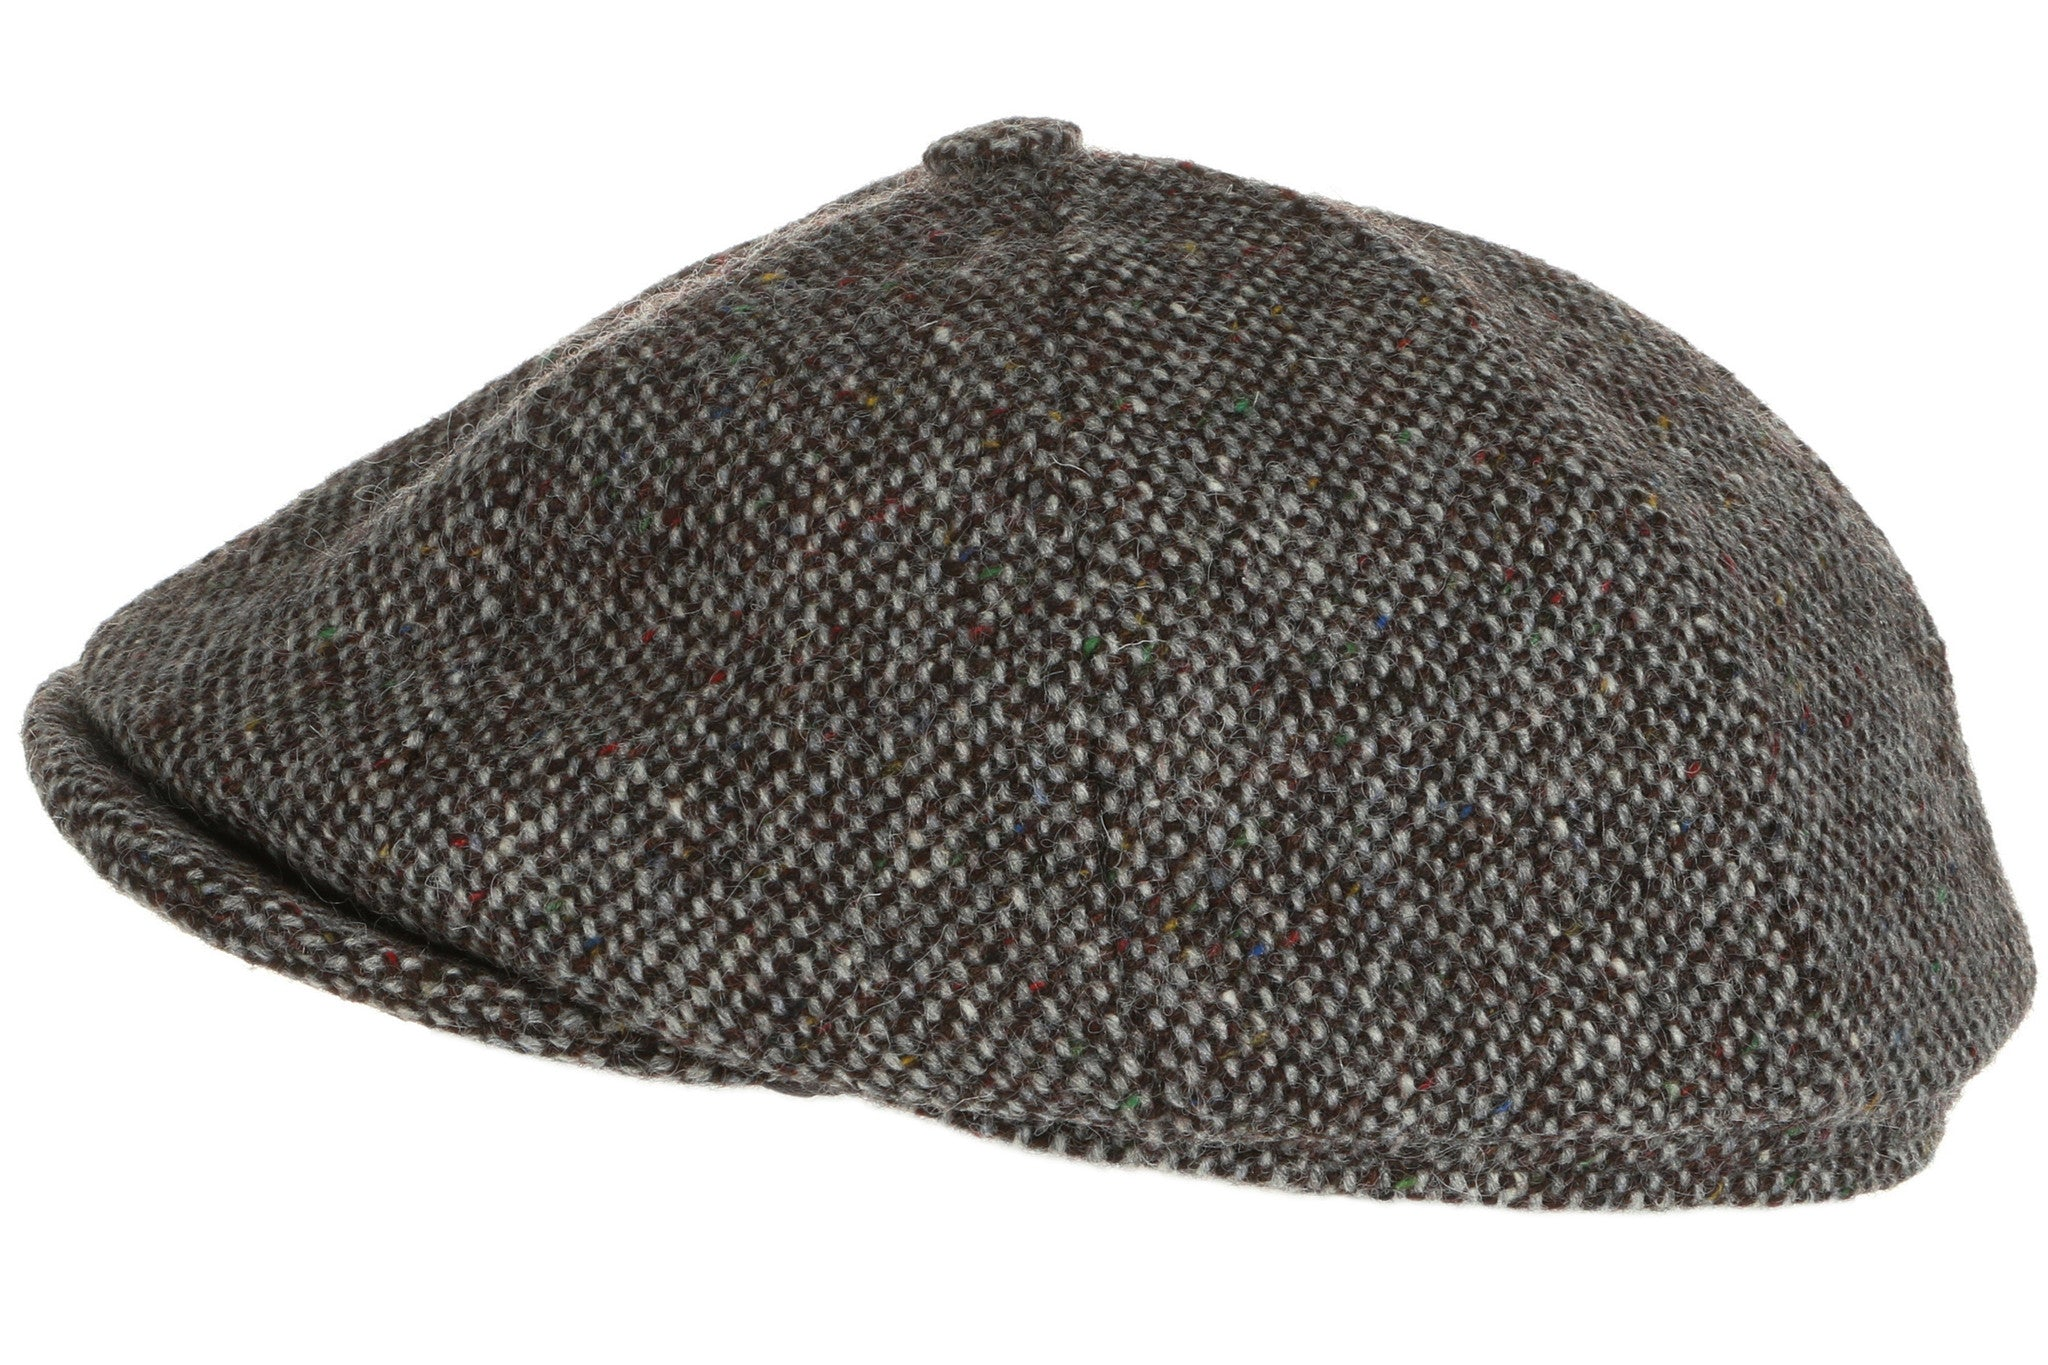 ... Hanna Hats Newsboy Cap Tweed Grey Salt-n-Pepper ... b713acc374b